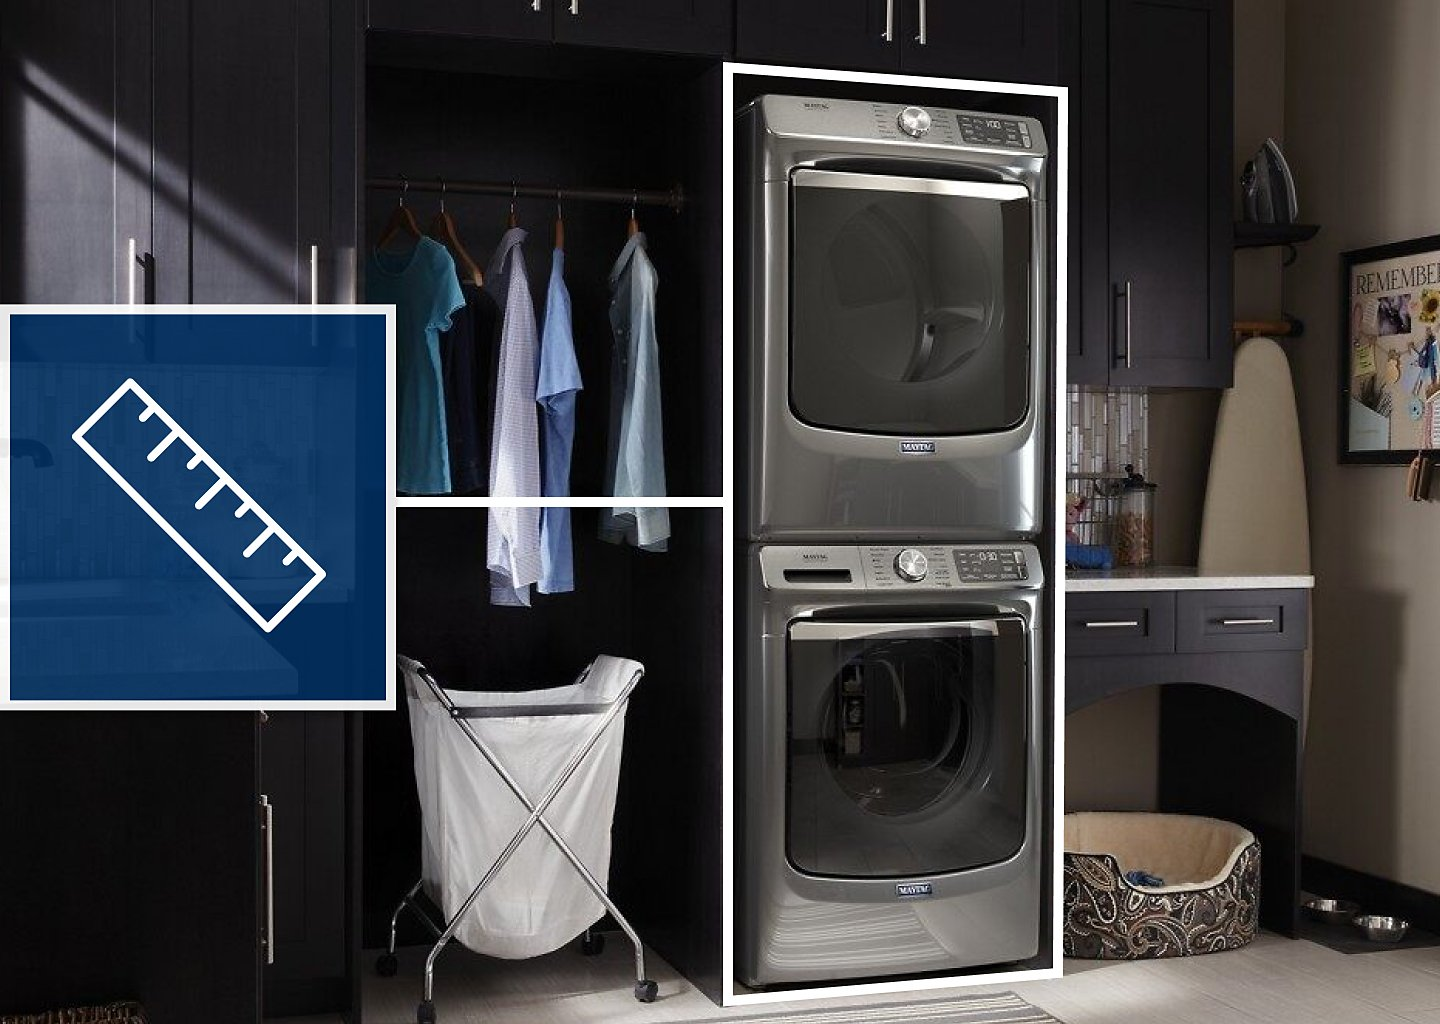 Stacked washer and dryer in laundry room with ruler icon